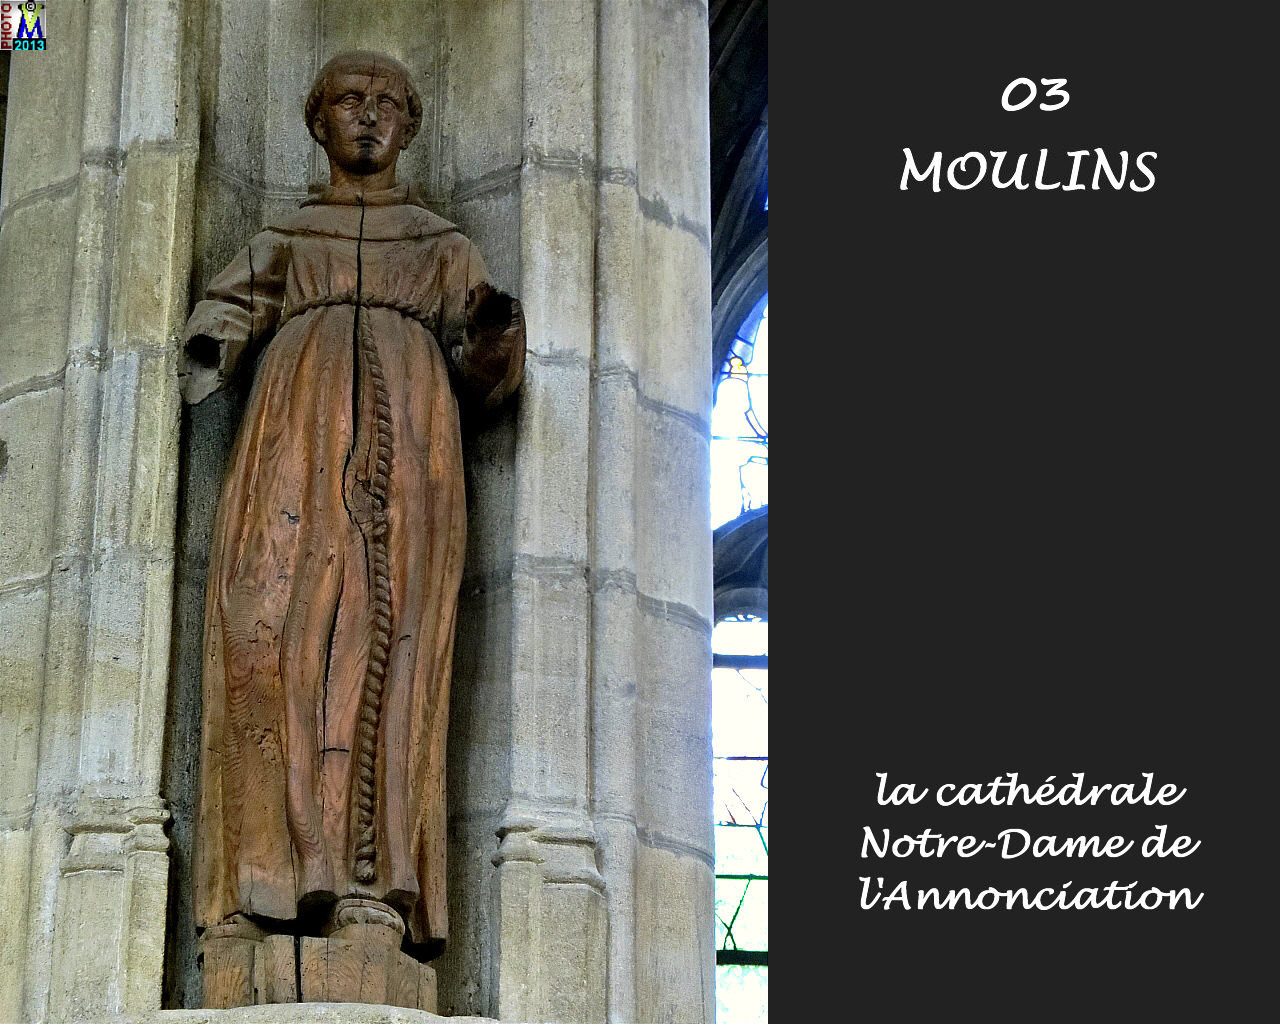 03MOULINS_cathedrale_250.jpg